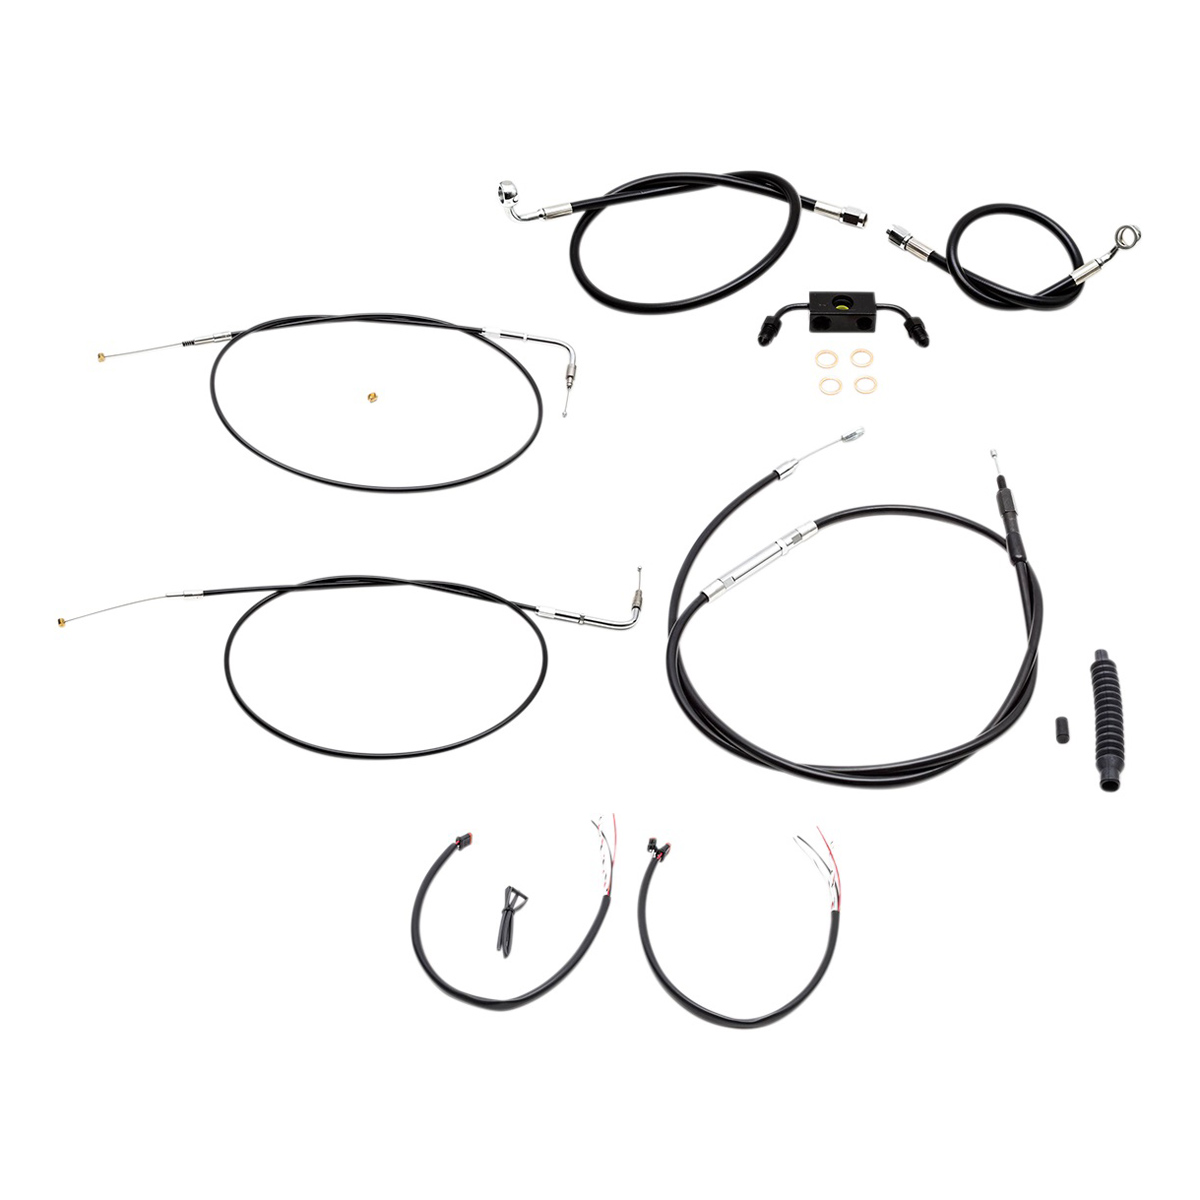 La Choppers Black Complete Cable Line Wiring Handlebar Kit For 12 14 Bars On Models With Abs